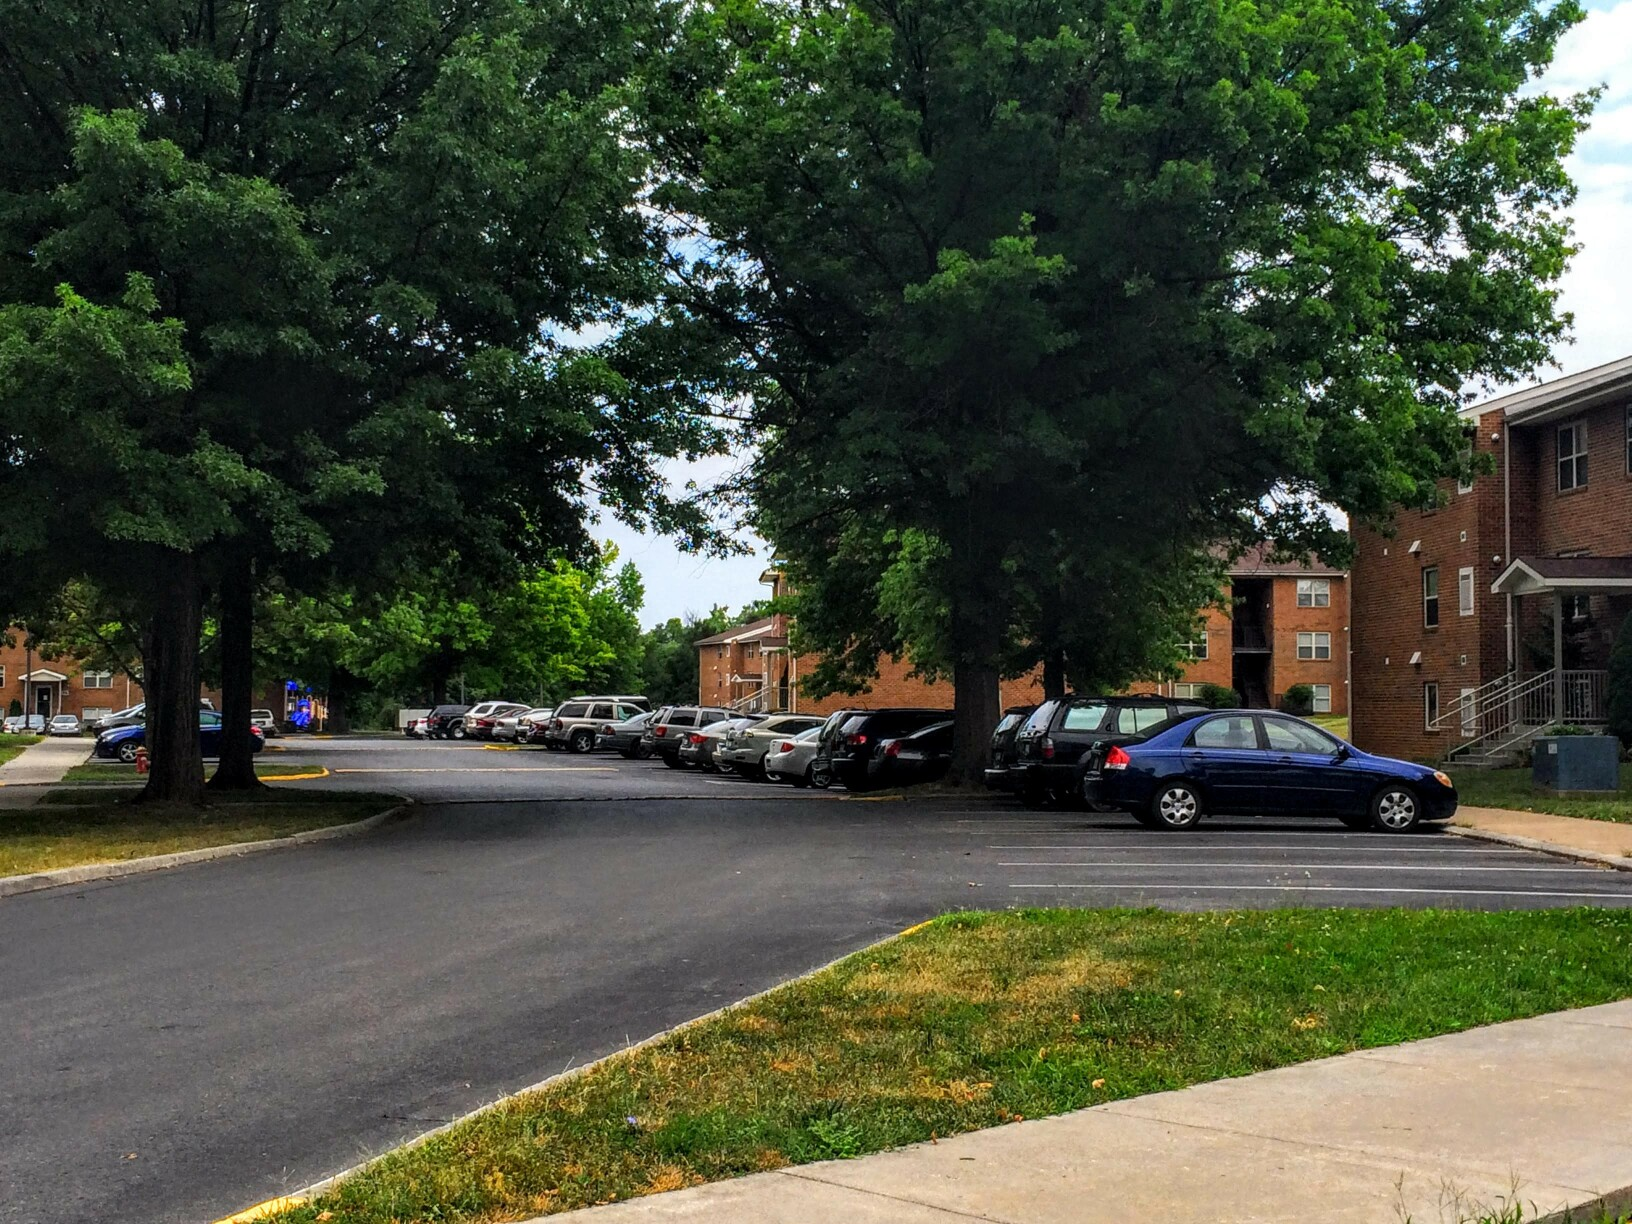 View of Apartment Complex